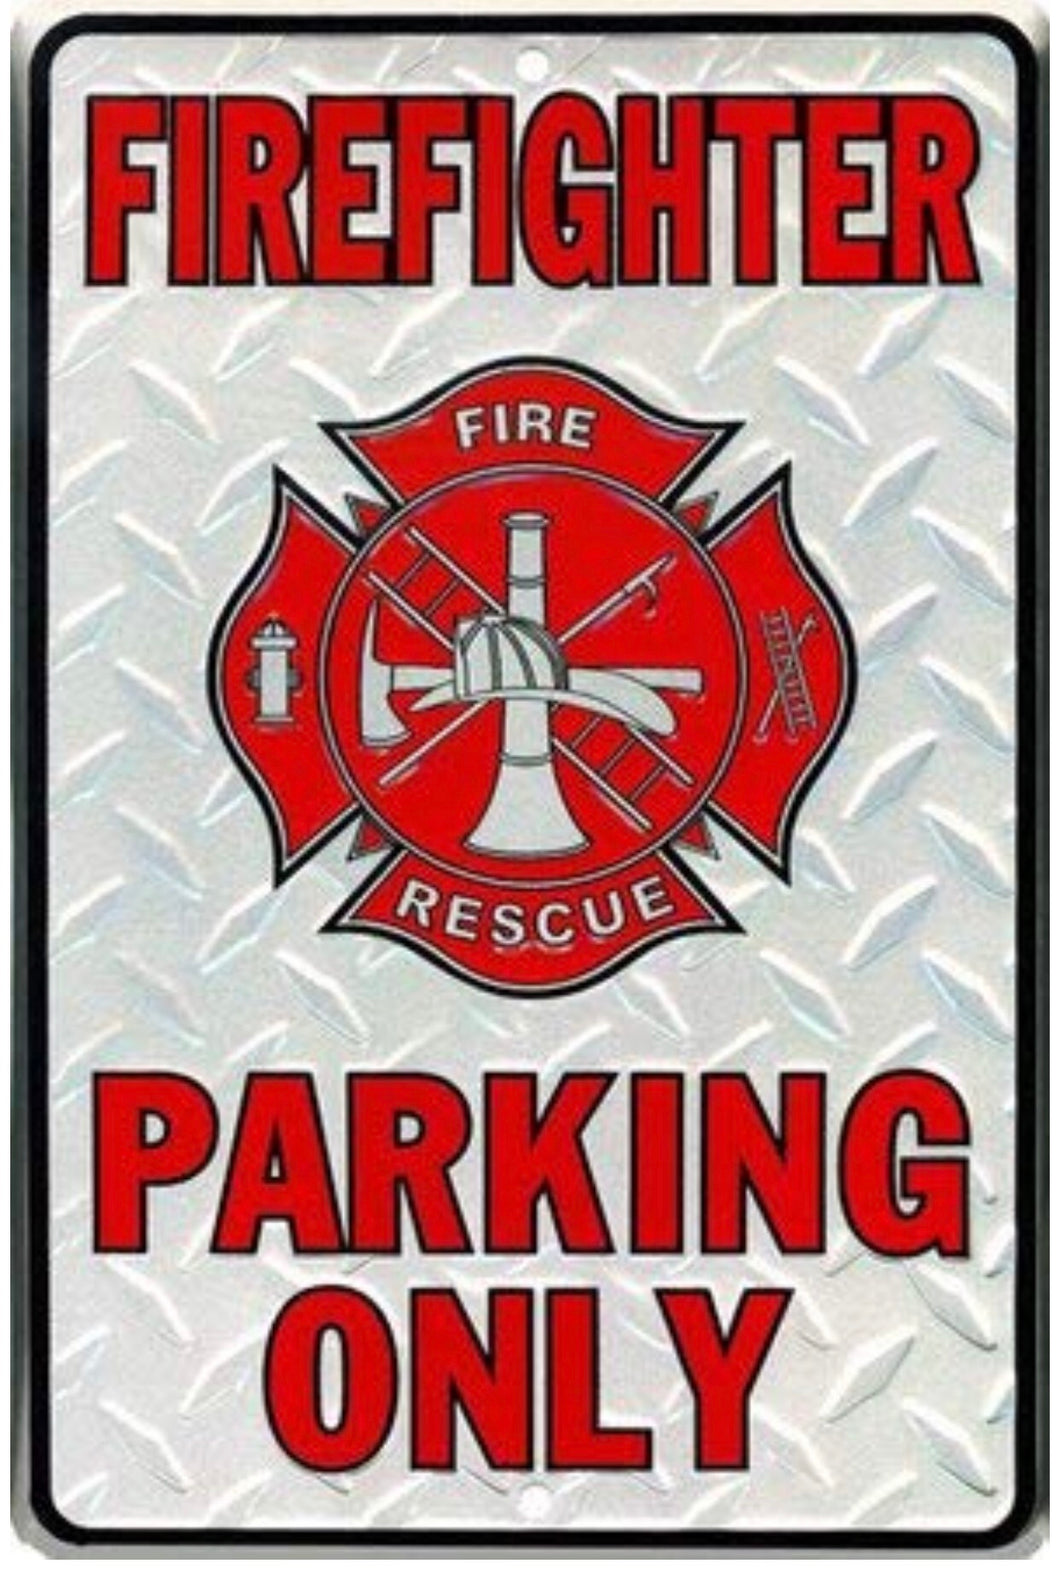 Firefighter Parking Only Metal Novelty Parking Sign 8